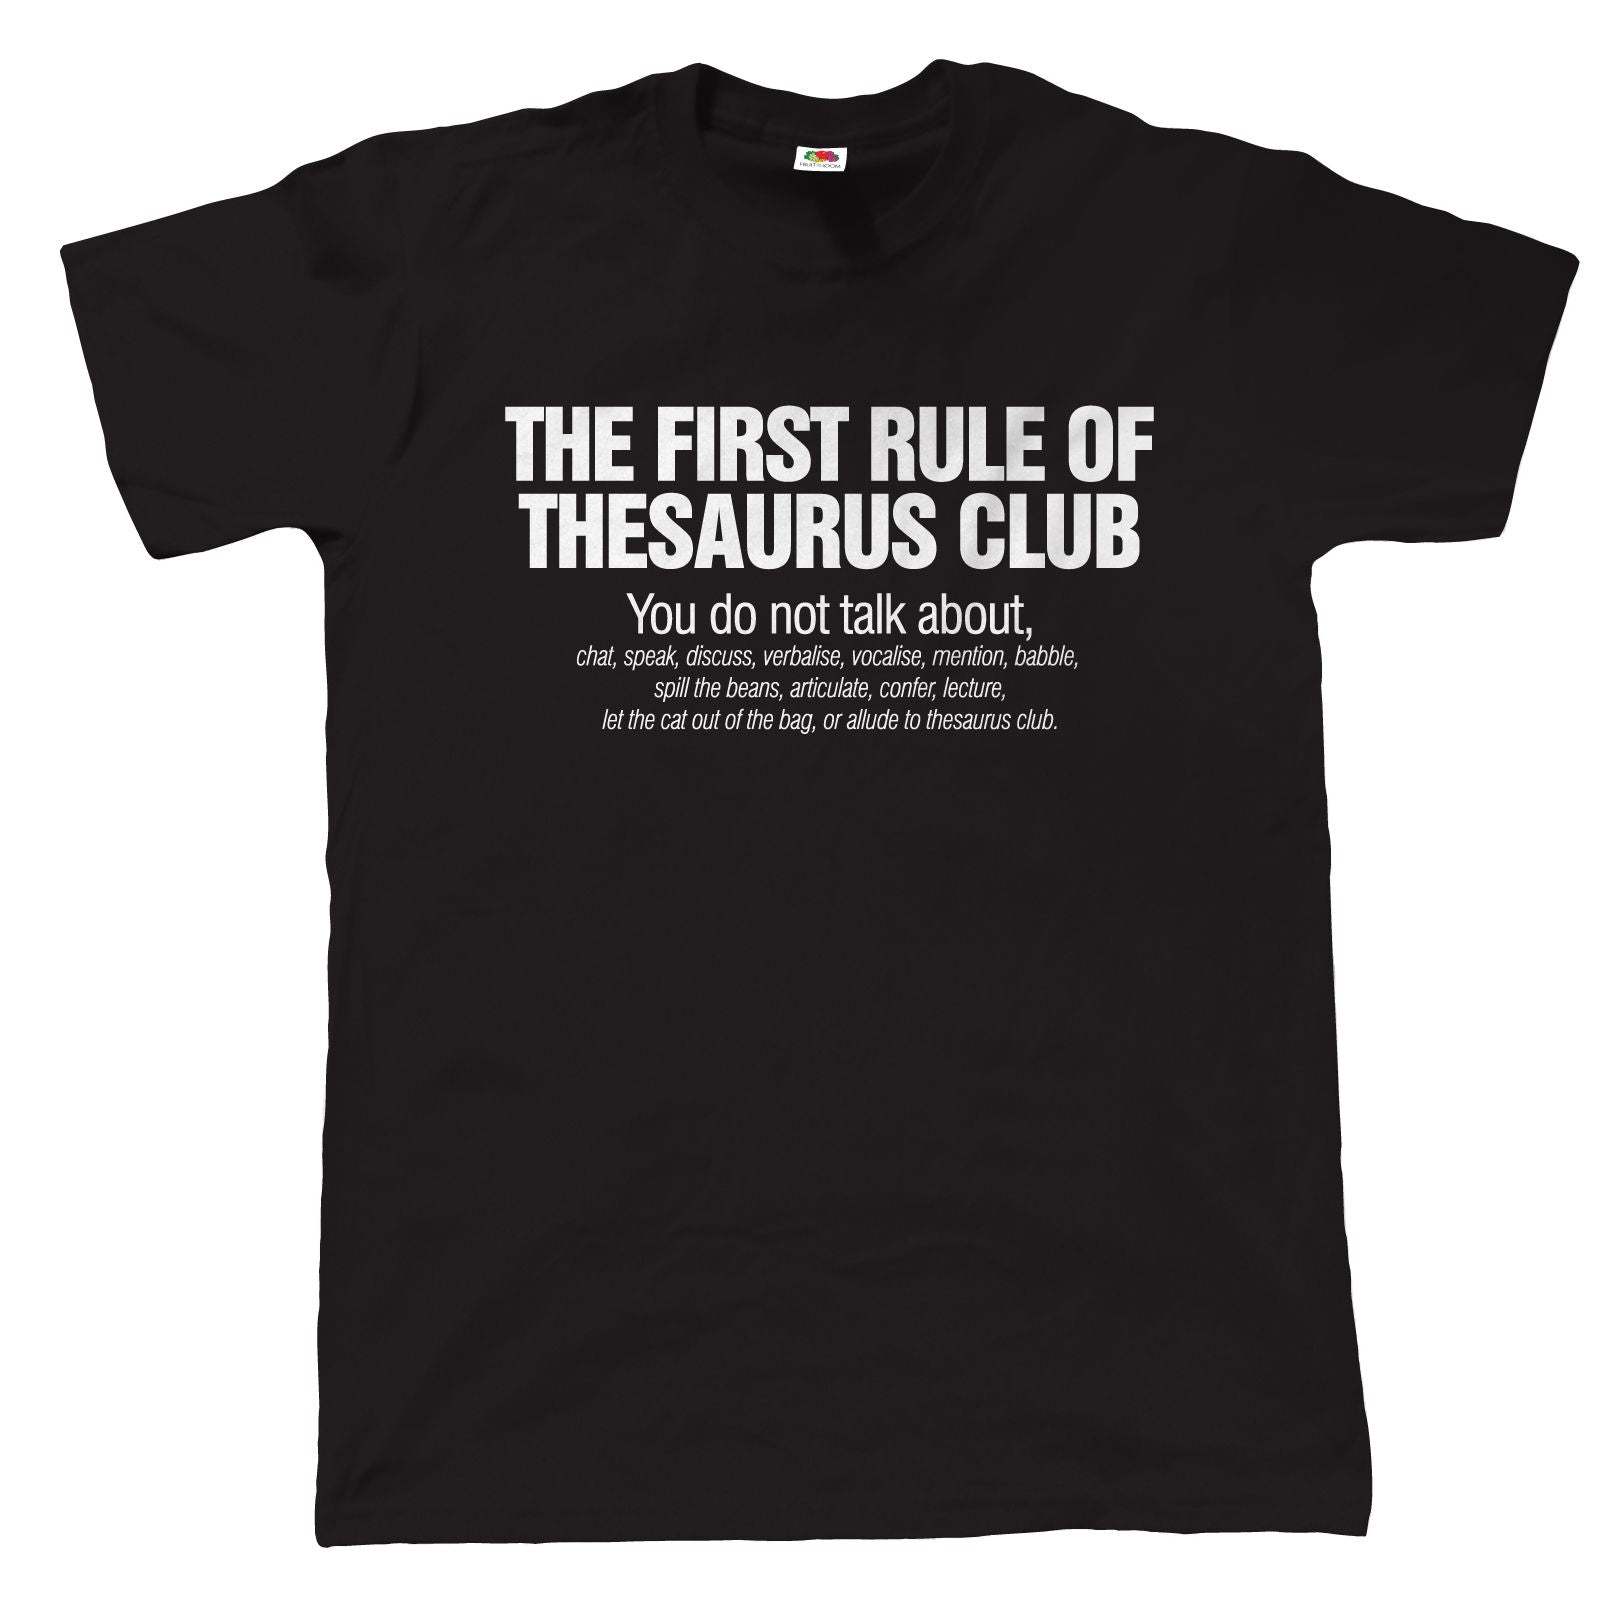 The First Rule Of Thesaurus Club, Mens Funny T Shirt